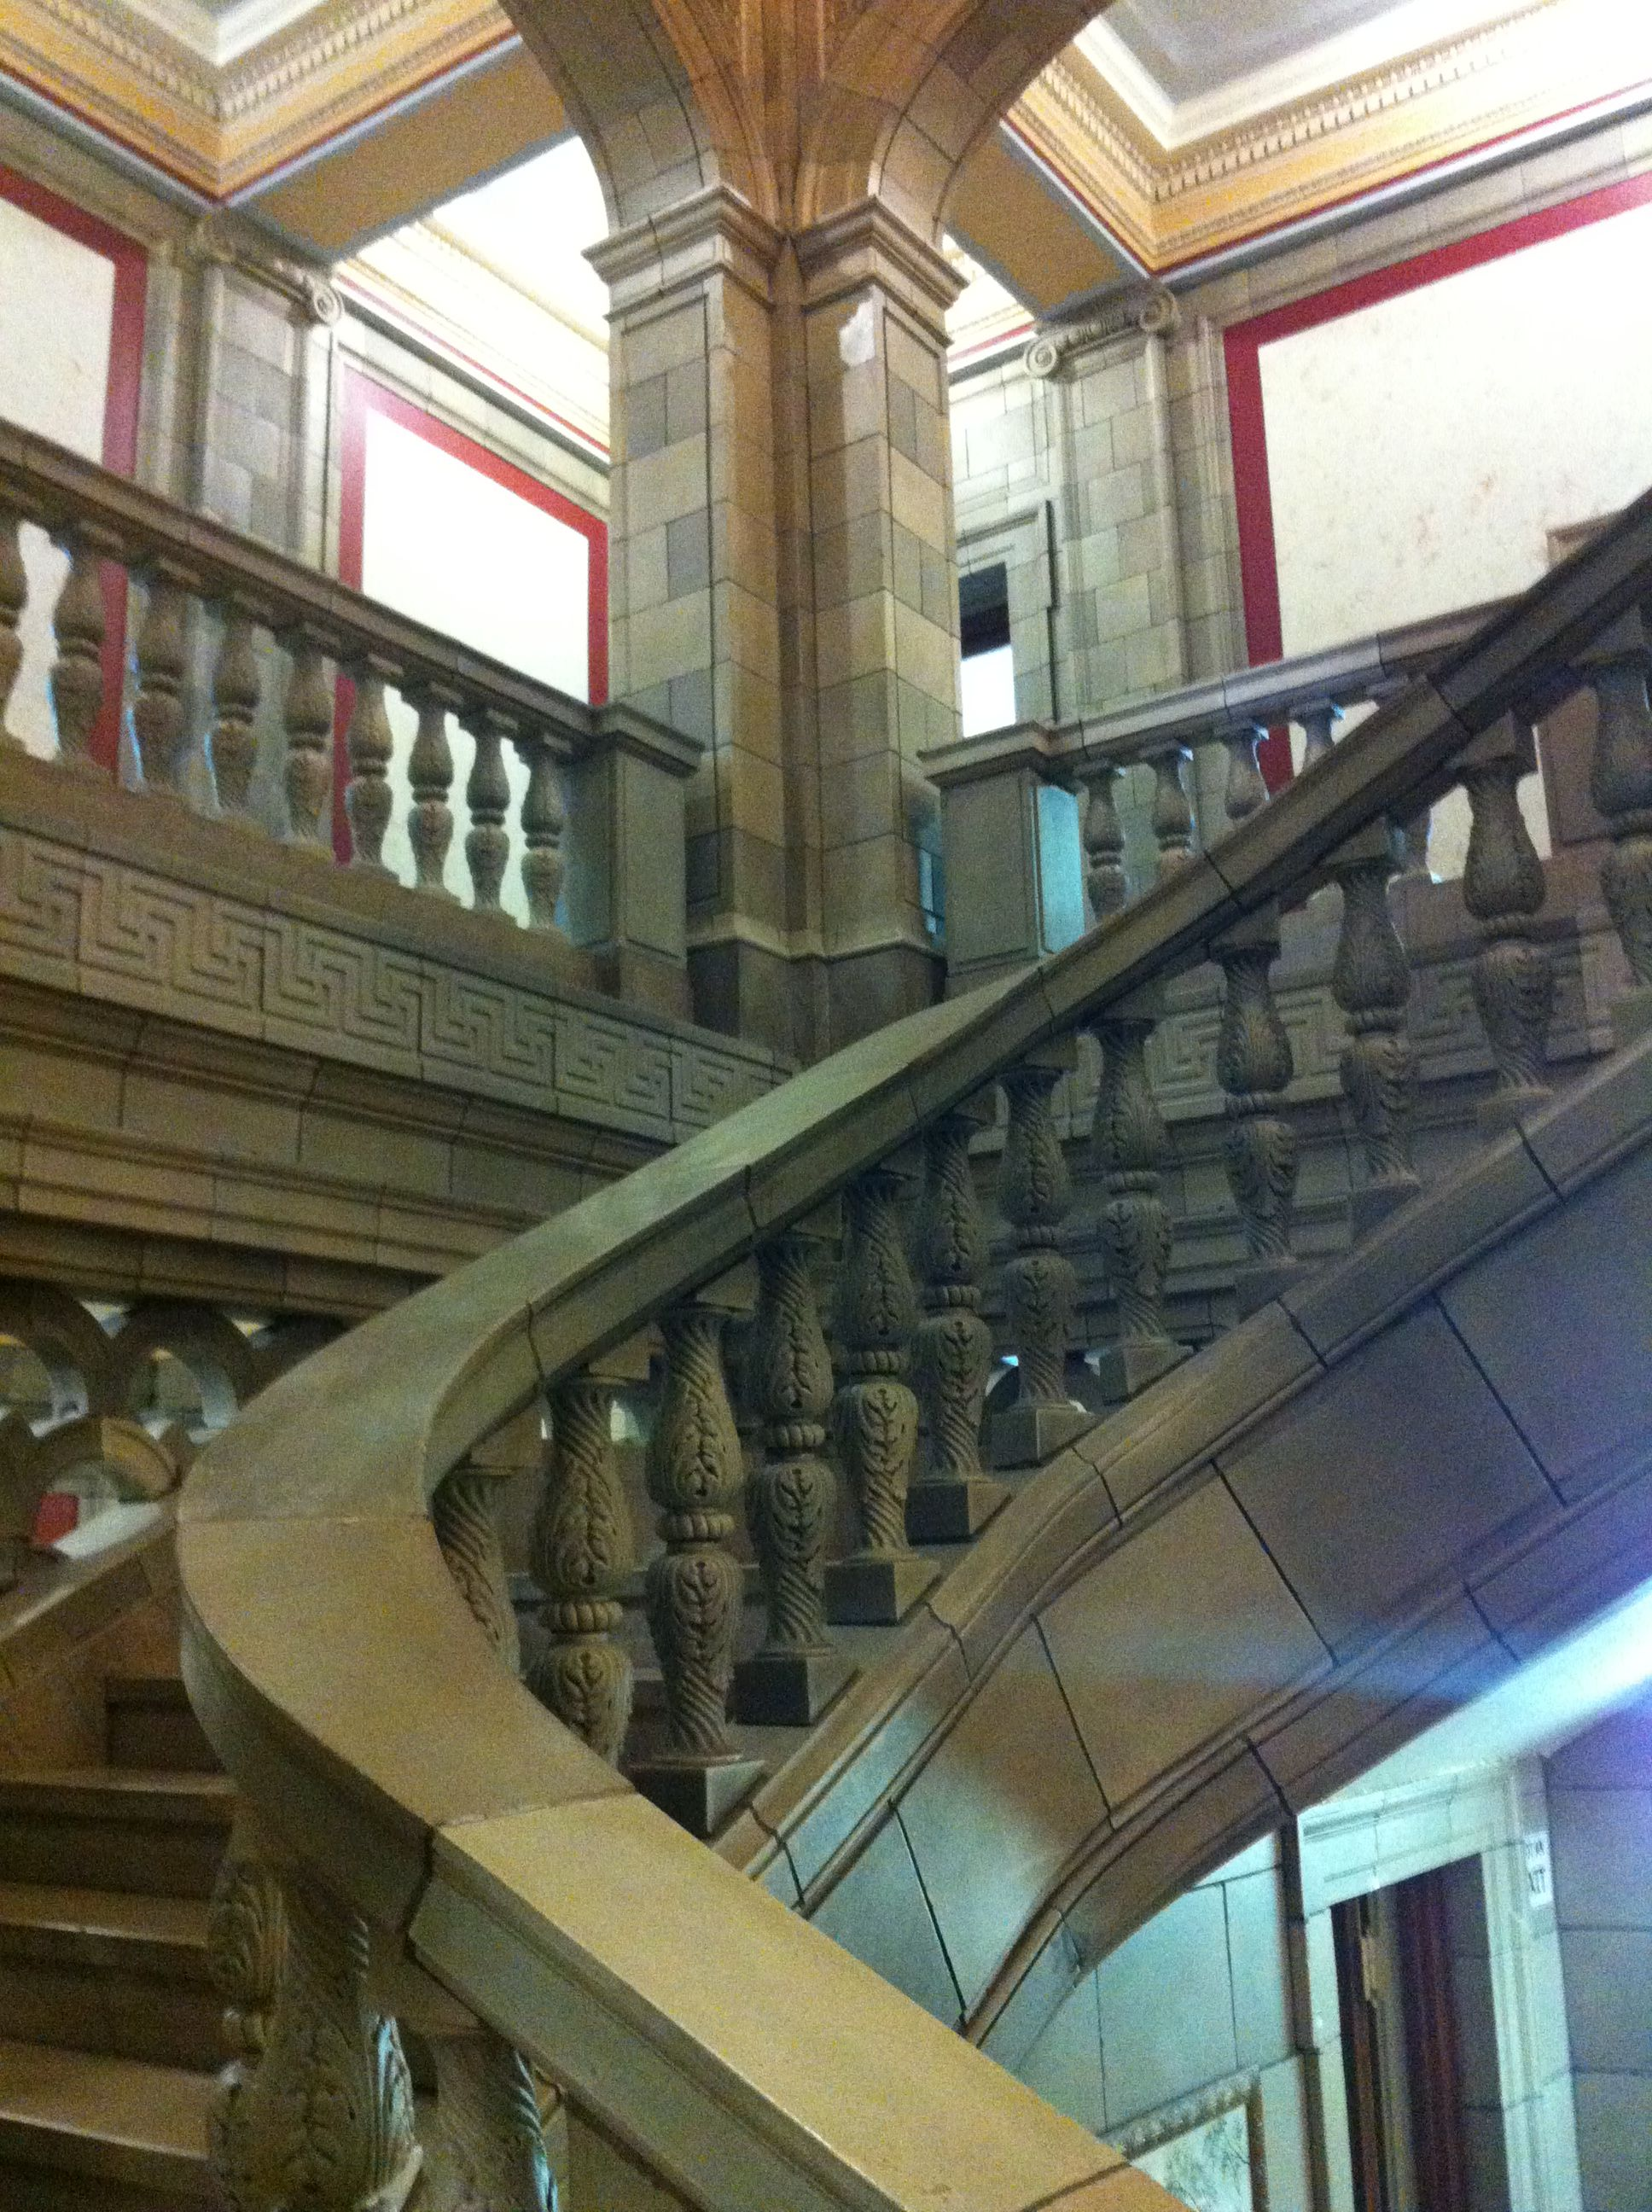 The grand staircase at the Hardin County